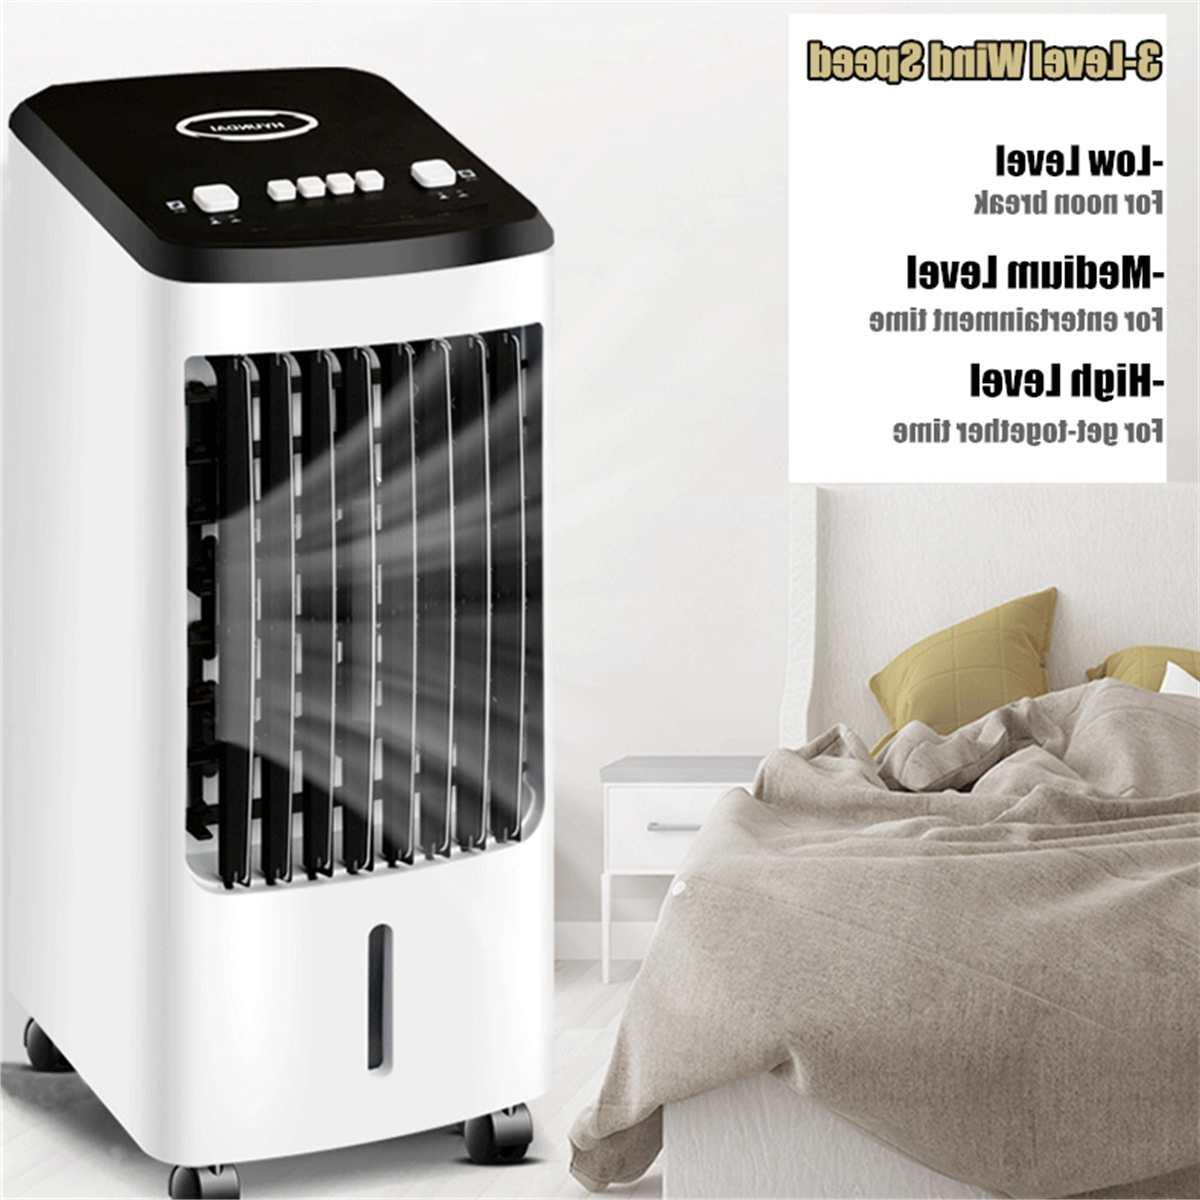 Conditioning Humidifier Cooler Cooling <font><b>Air</b></font> Timed Humidifier+Gift